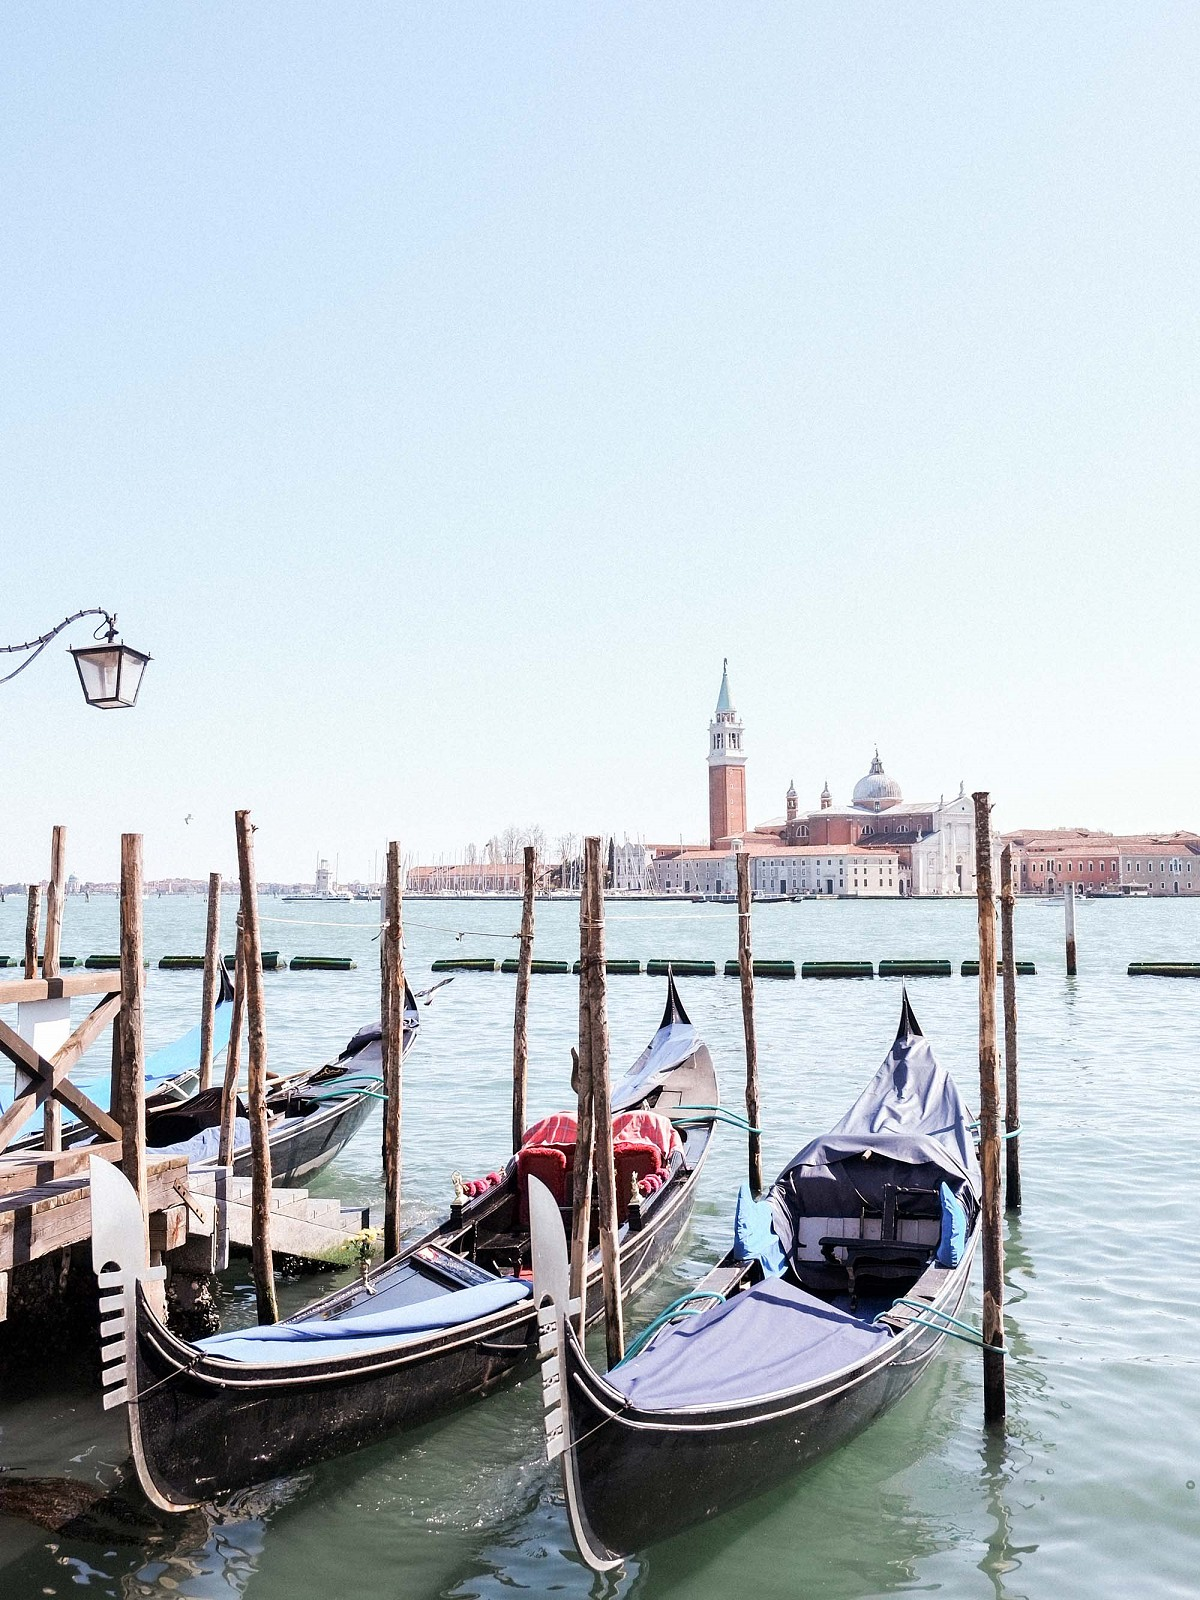 Honeymoon guide to Lake Como and Venice, Italy